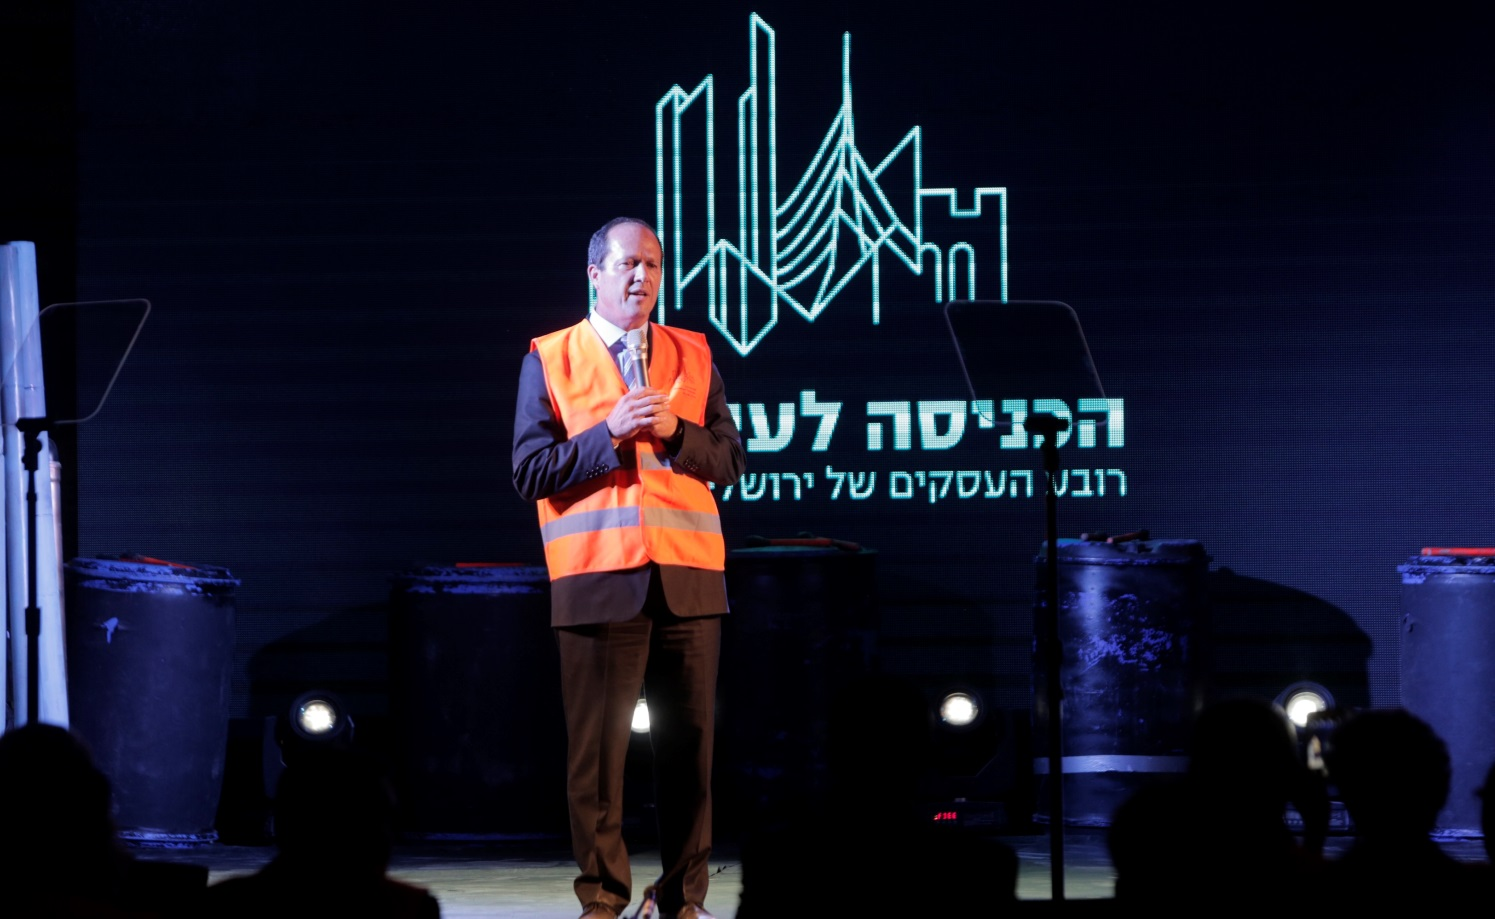 Jerusalem Mayor Nir Barkat speaking at the cornerstone-laying ceremony on October 26, 2016. Photo by Tomer Zmora